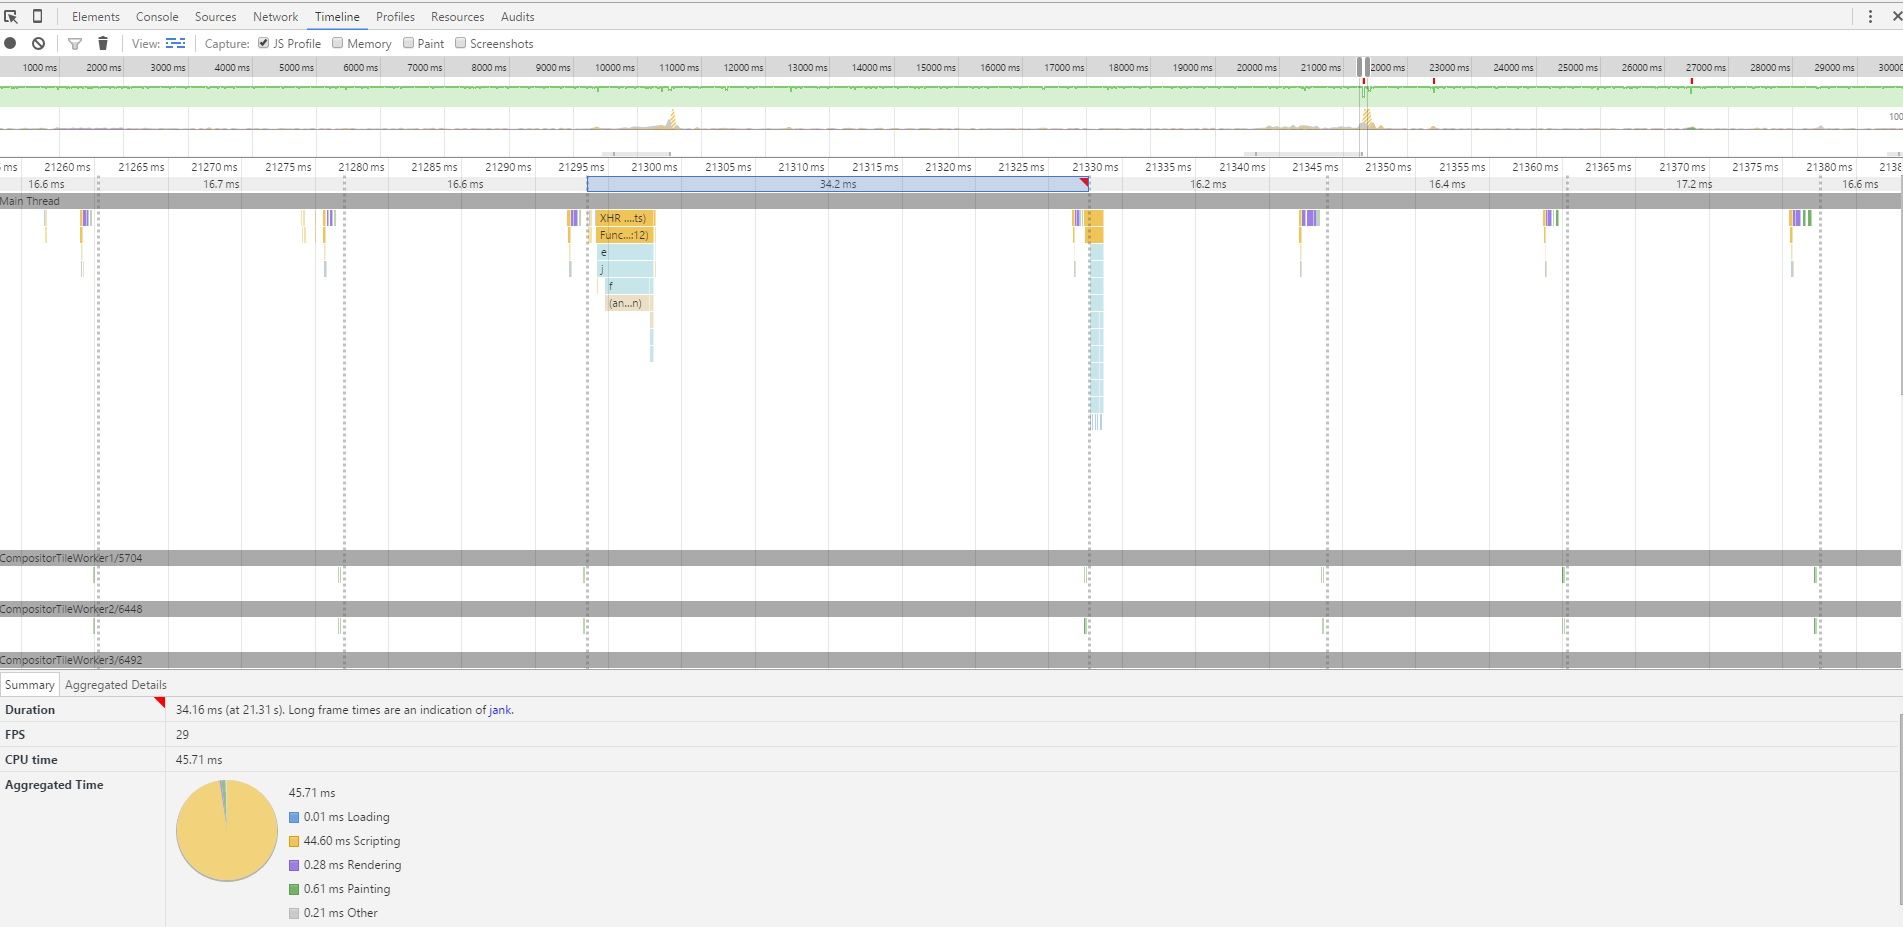 VideoJS5 Timeline - HLS Video Streaming Test